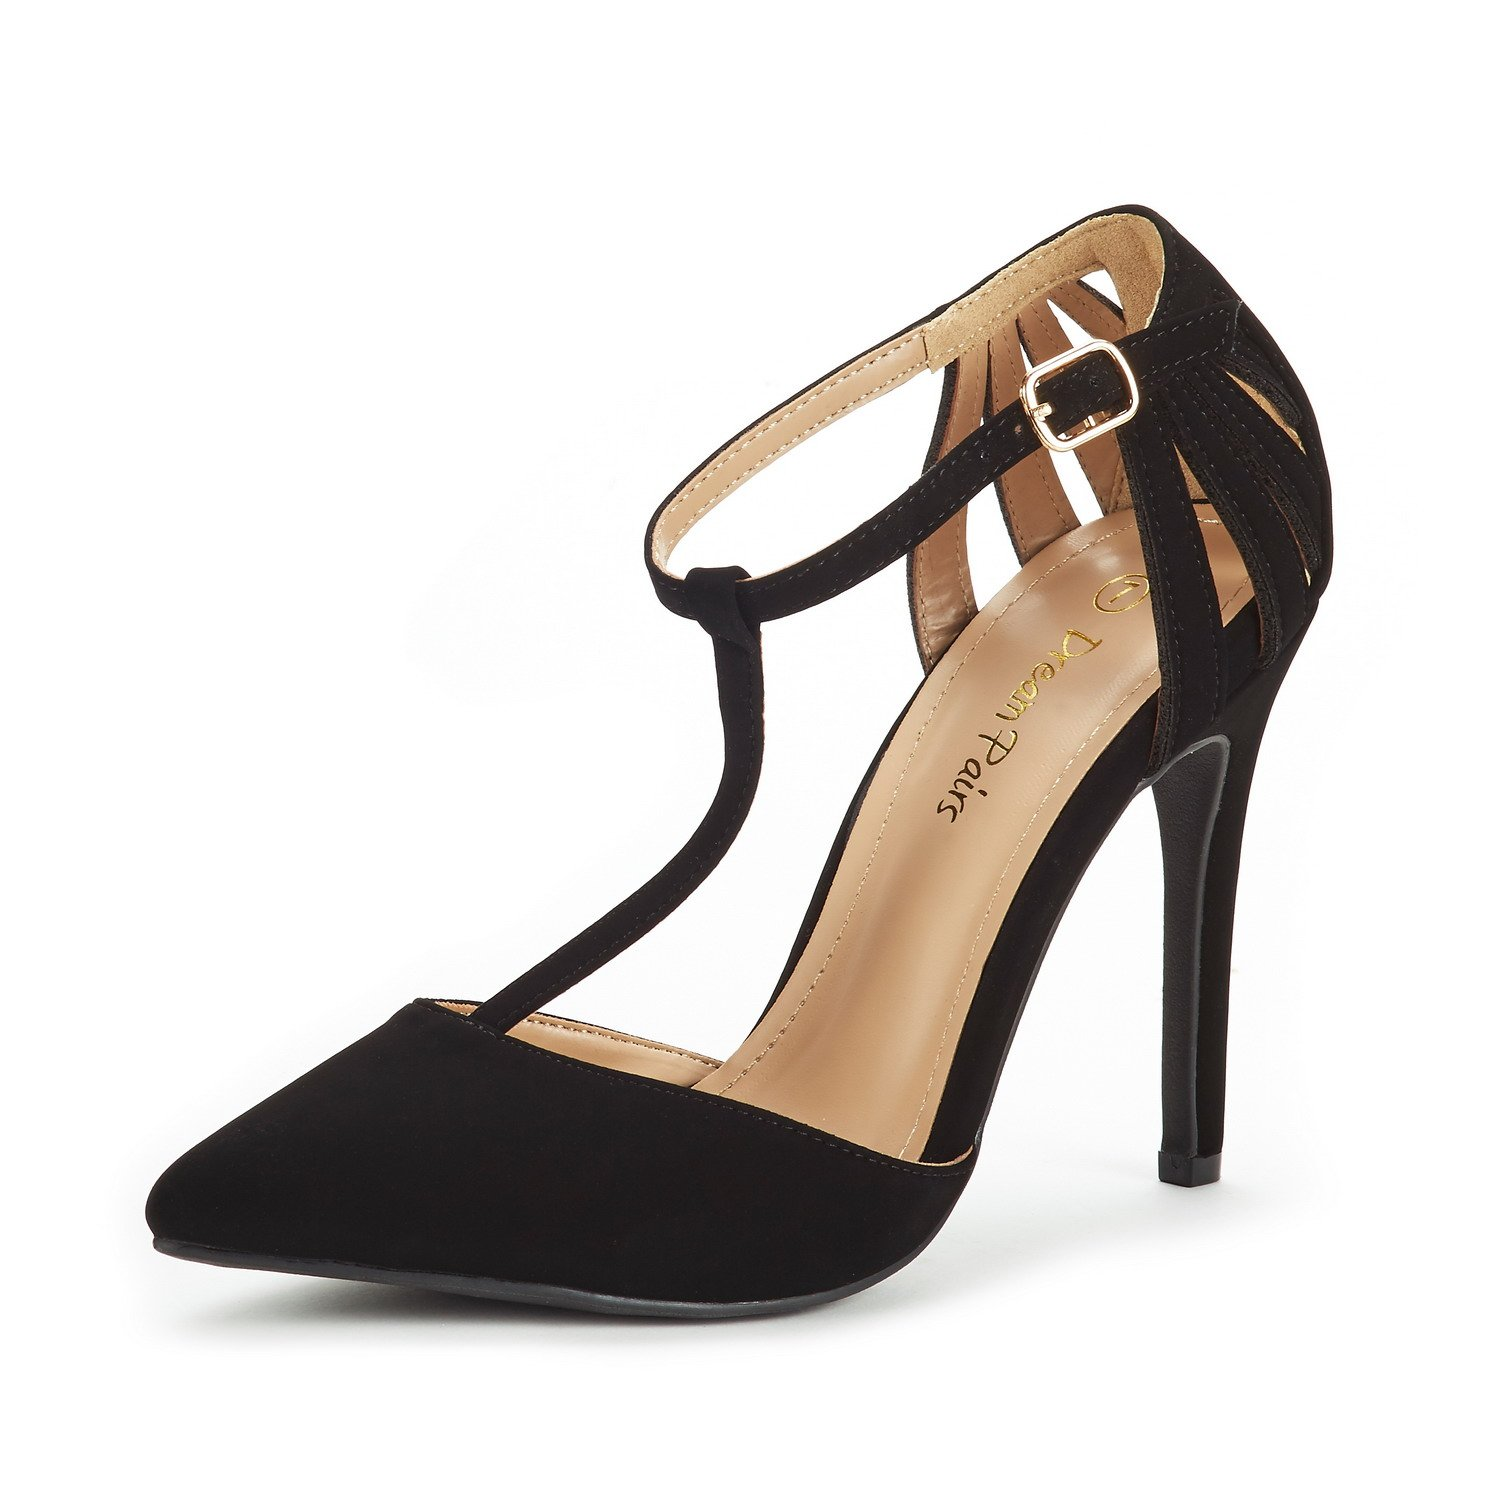 DREAM PAIRS Women's Oppointed-Mary Black Nubuck Fashion Dress High Heel Pointed Toe Wedding Pumps Shoes Size 7 M US